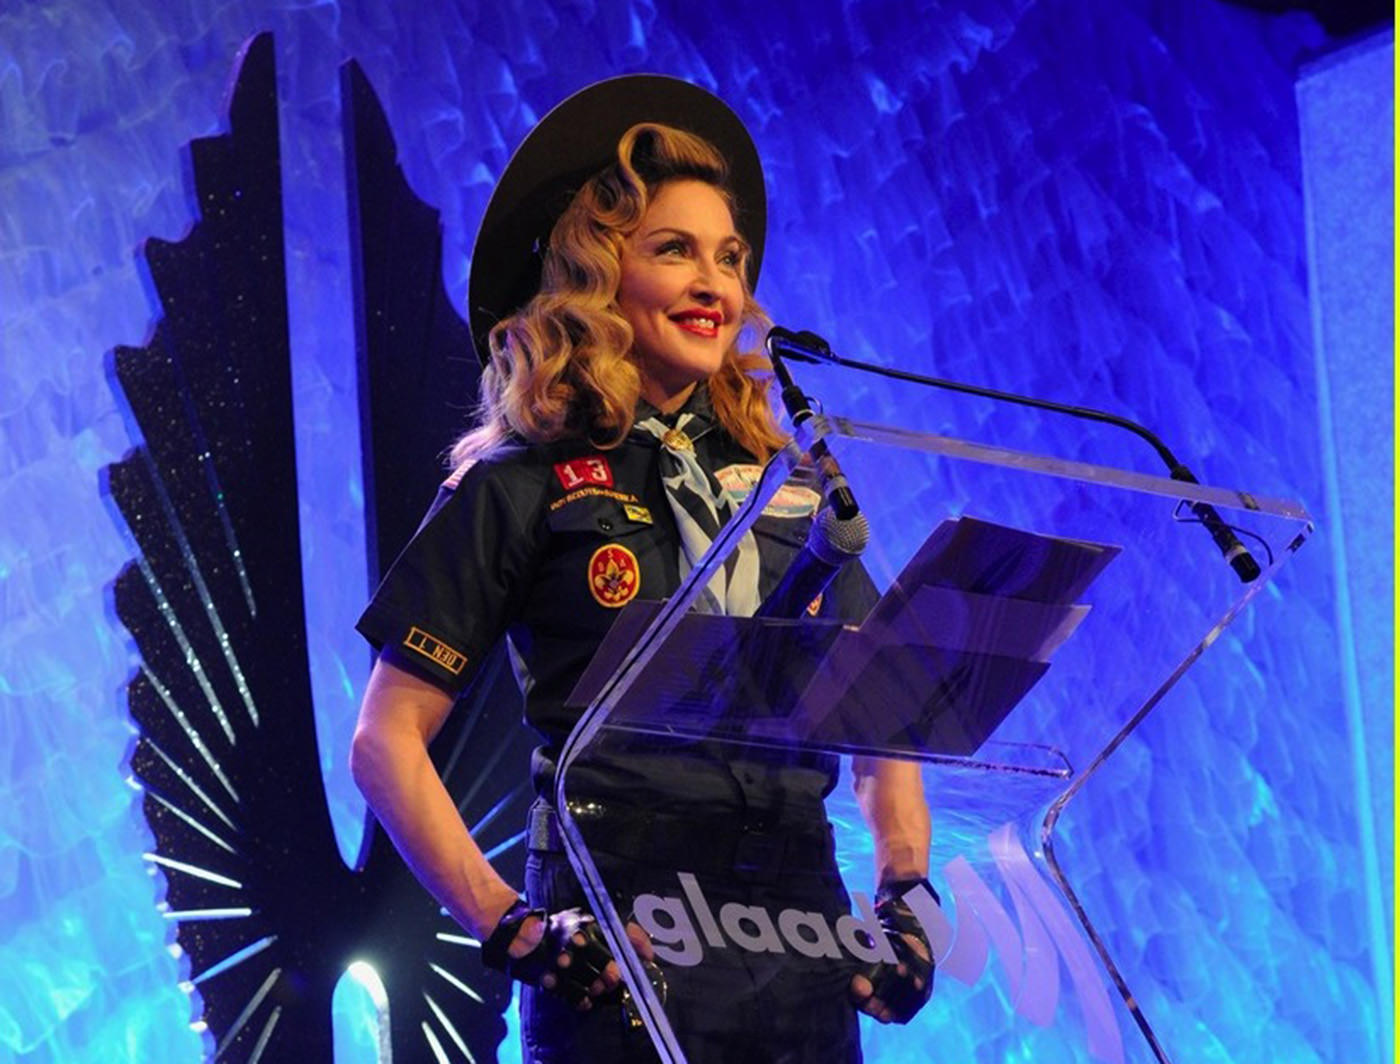 MADONNA AT THE GLAAD AWARDS IN NEW YORK - 2013